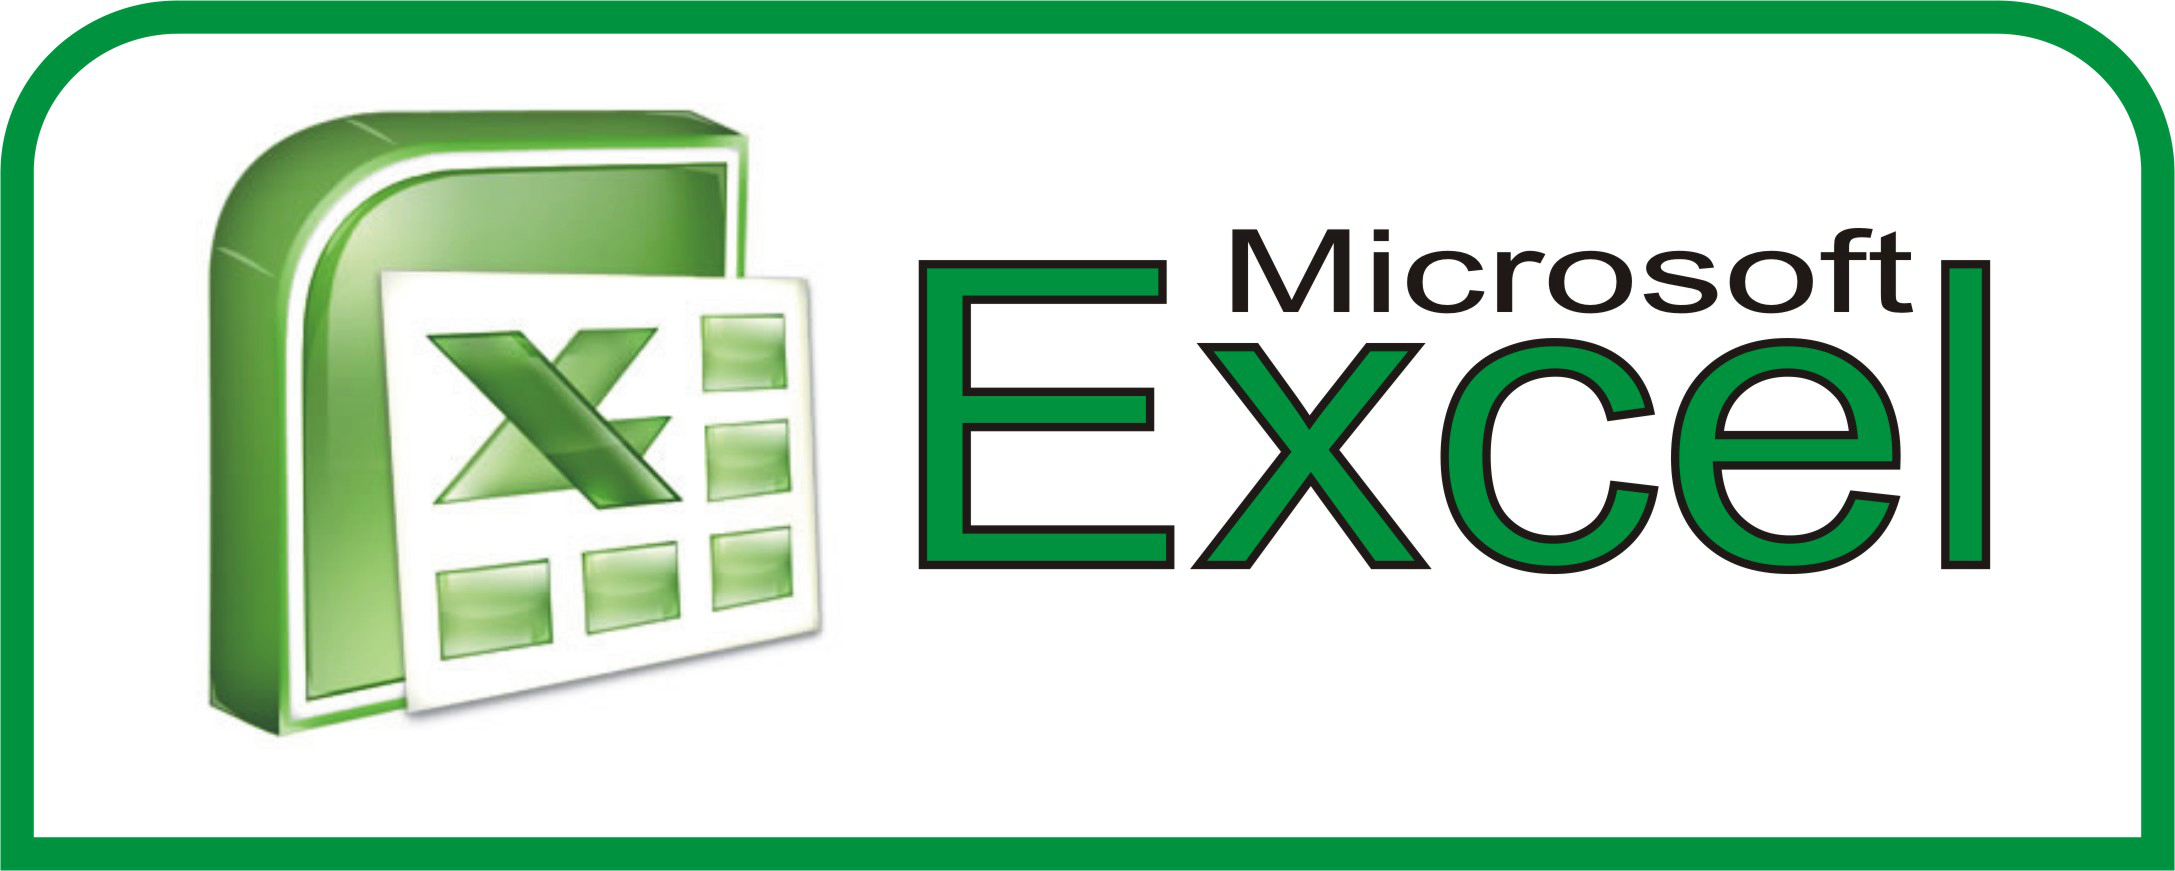 Ediblewildsus  Marvellous  Excel Shortcuts You Probably Didnt Know About  Techdissected With Handsome Excel Low Pass Filter Besides Excel Monthly Calendar Templates Furthermore Add Calendar To Excel Cell With Attractive Excel Security Company Also What Does Symbol Mean In Excel In Addition Percentile Rank In Excel And Timeline Templates Excel As Well As Excel Vba Time Format Additionally Excel Create Report Table From Techdissectedcom With Ediblewildsus  Handsome  Excel Shortcuts You Probably Didnt Know About  Techdissected With Attractive Excel Low Pass Filter Besides Excel Monthly Calendar Templates Furthermore Add Calendar To Excel Cell And Marvellous Excel Security Company Also What Does Symbol Mean In Excel In Addition Percentile Rank In Excel From Techdissectedcom